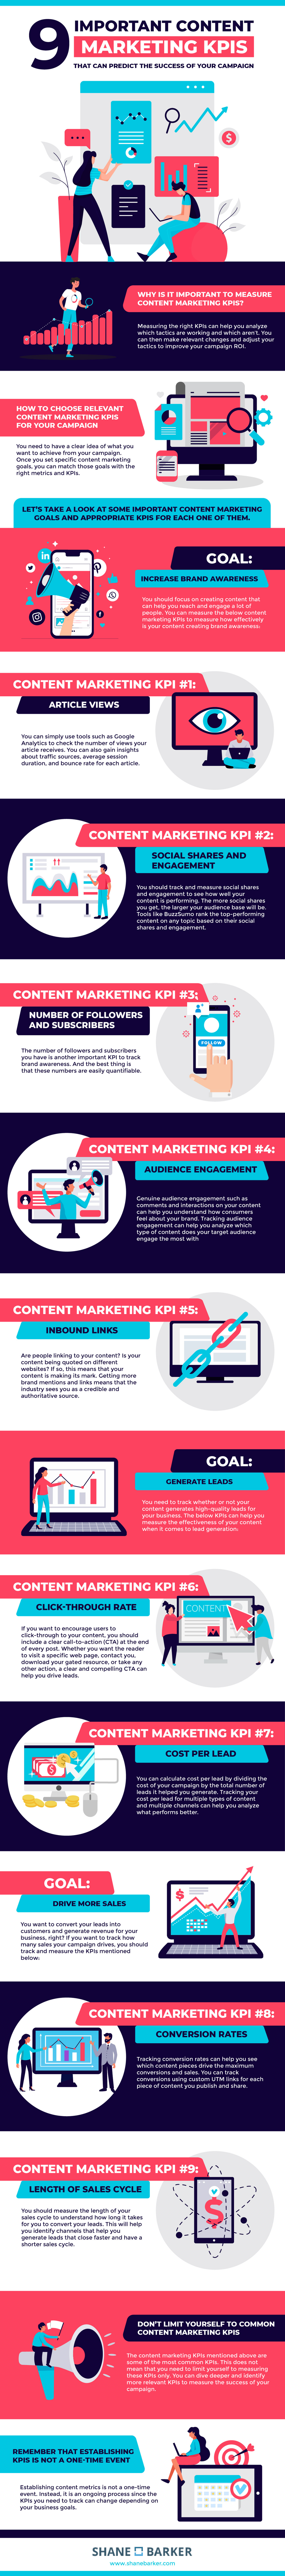 9 Important Content Marketing KPIs That Can Predict the Success of Your Campaign(Infographic)